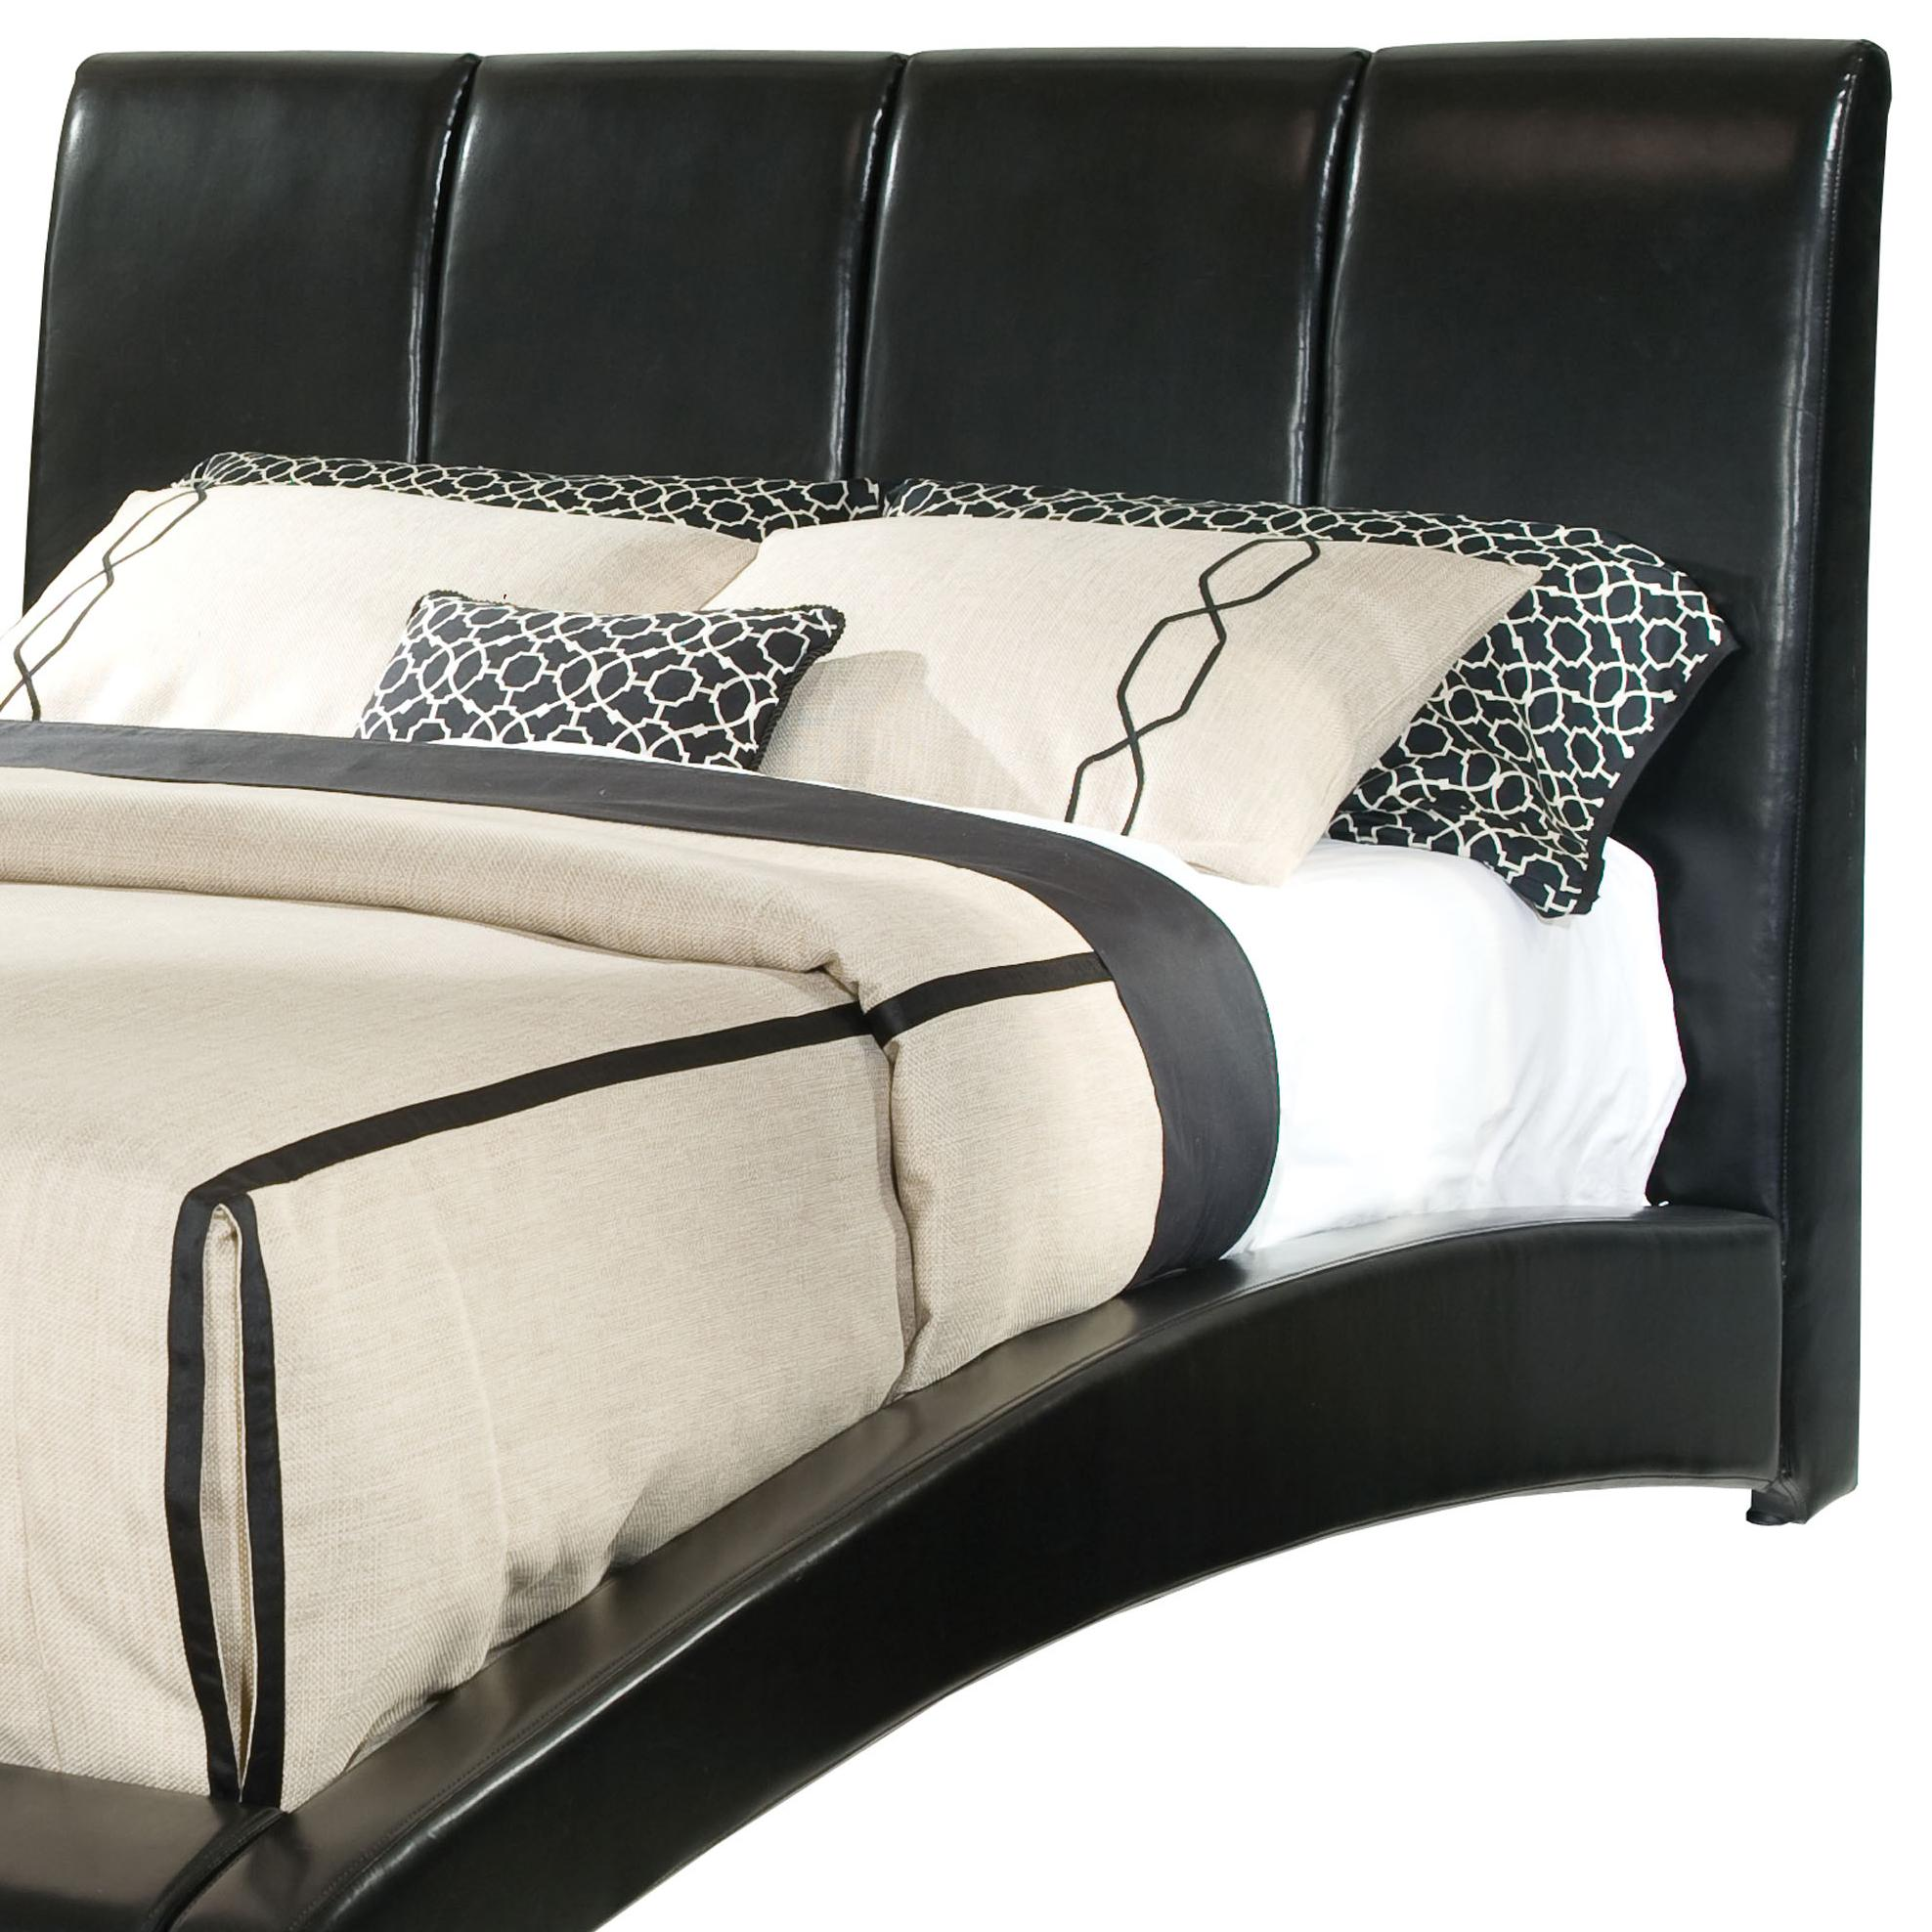 Standard Furniture Moderno King Upholstered Headboard - Item Number: 99511